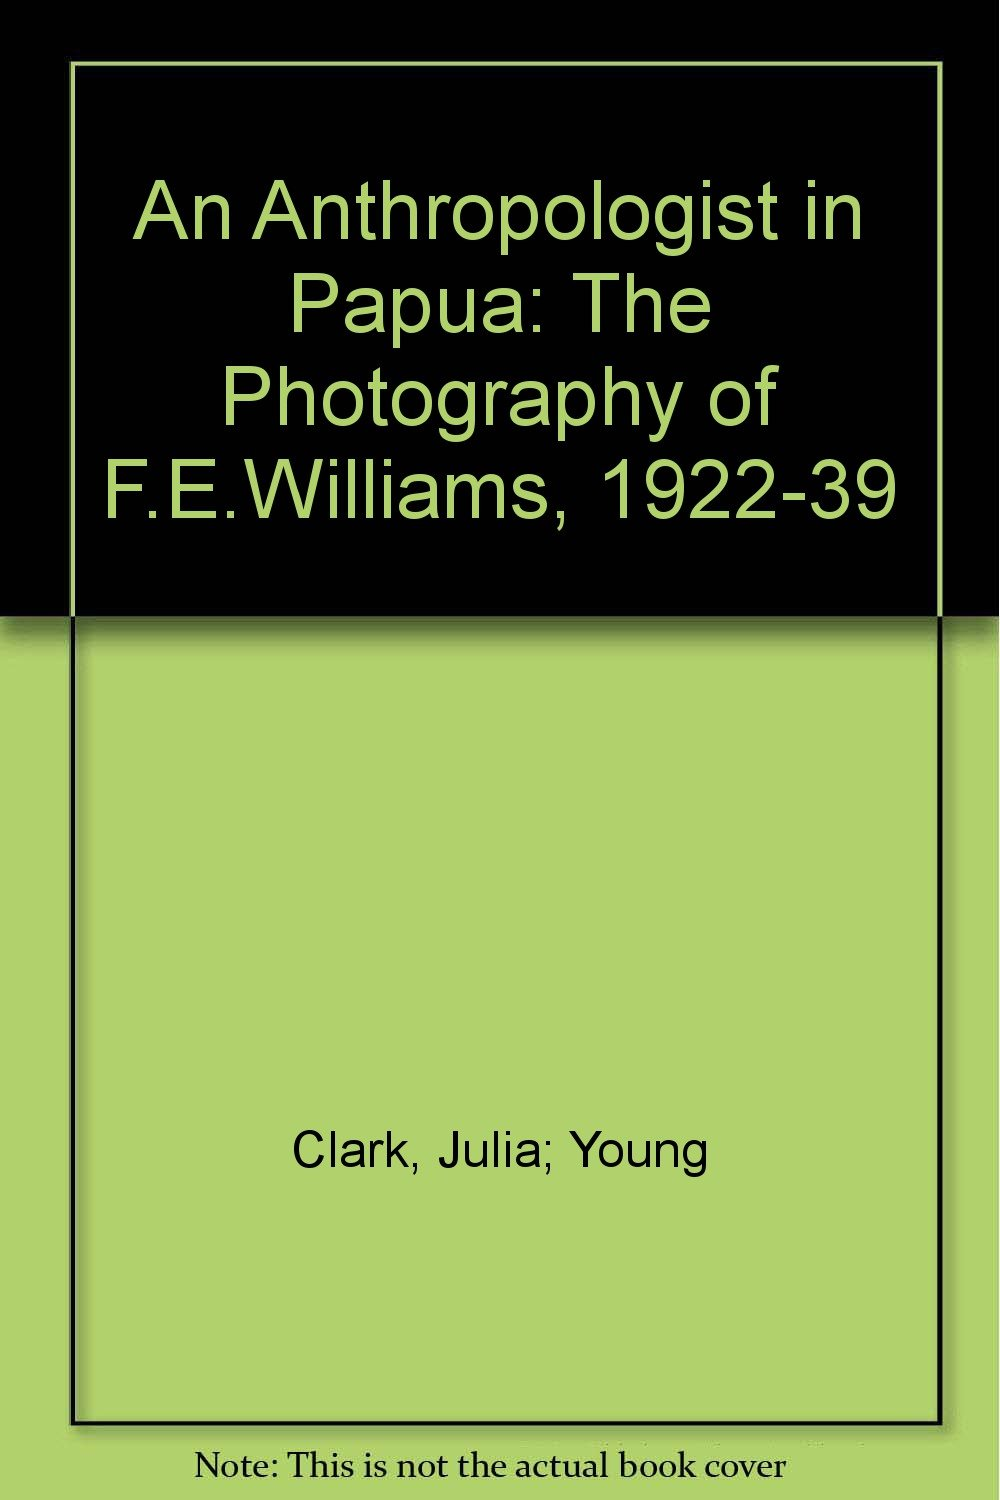 An Anthropologist in Papua: The Photography of F.E.Williams, 1922-39